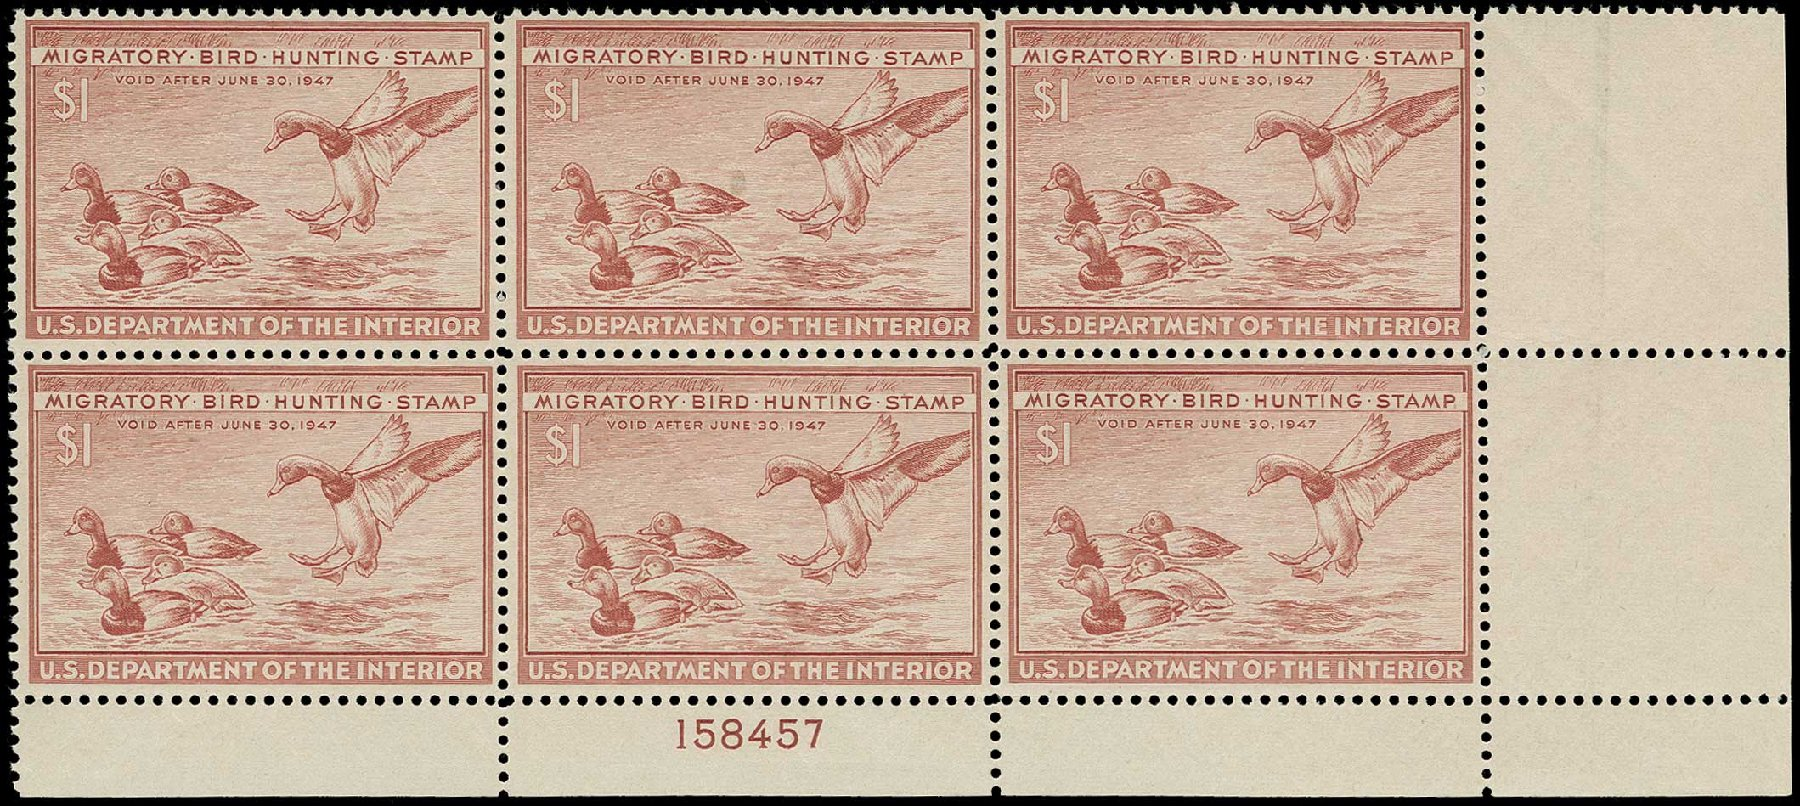 US Stamp Prices Scott Cat. #RW13 - US$1.00 1946 Federal Duck Hunting. H.R. Harmer, Jun 2015, Sale 3007, Lot 3596